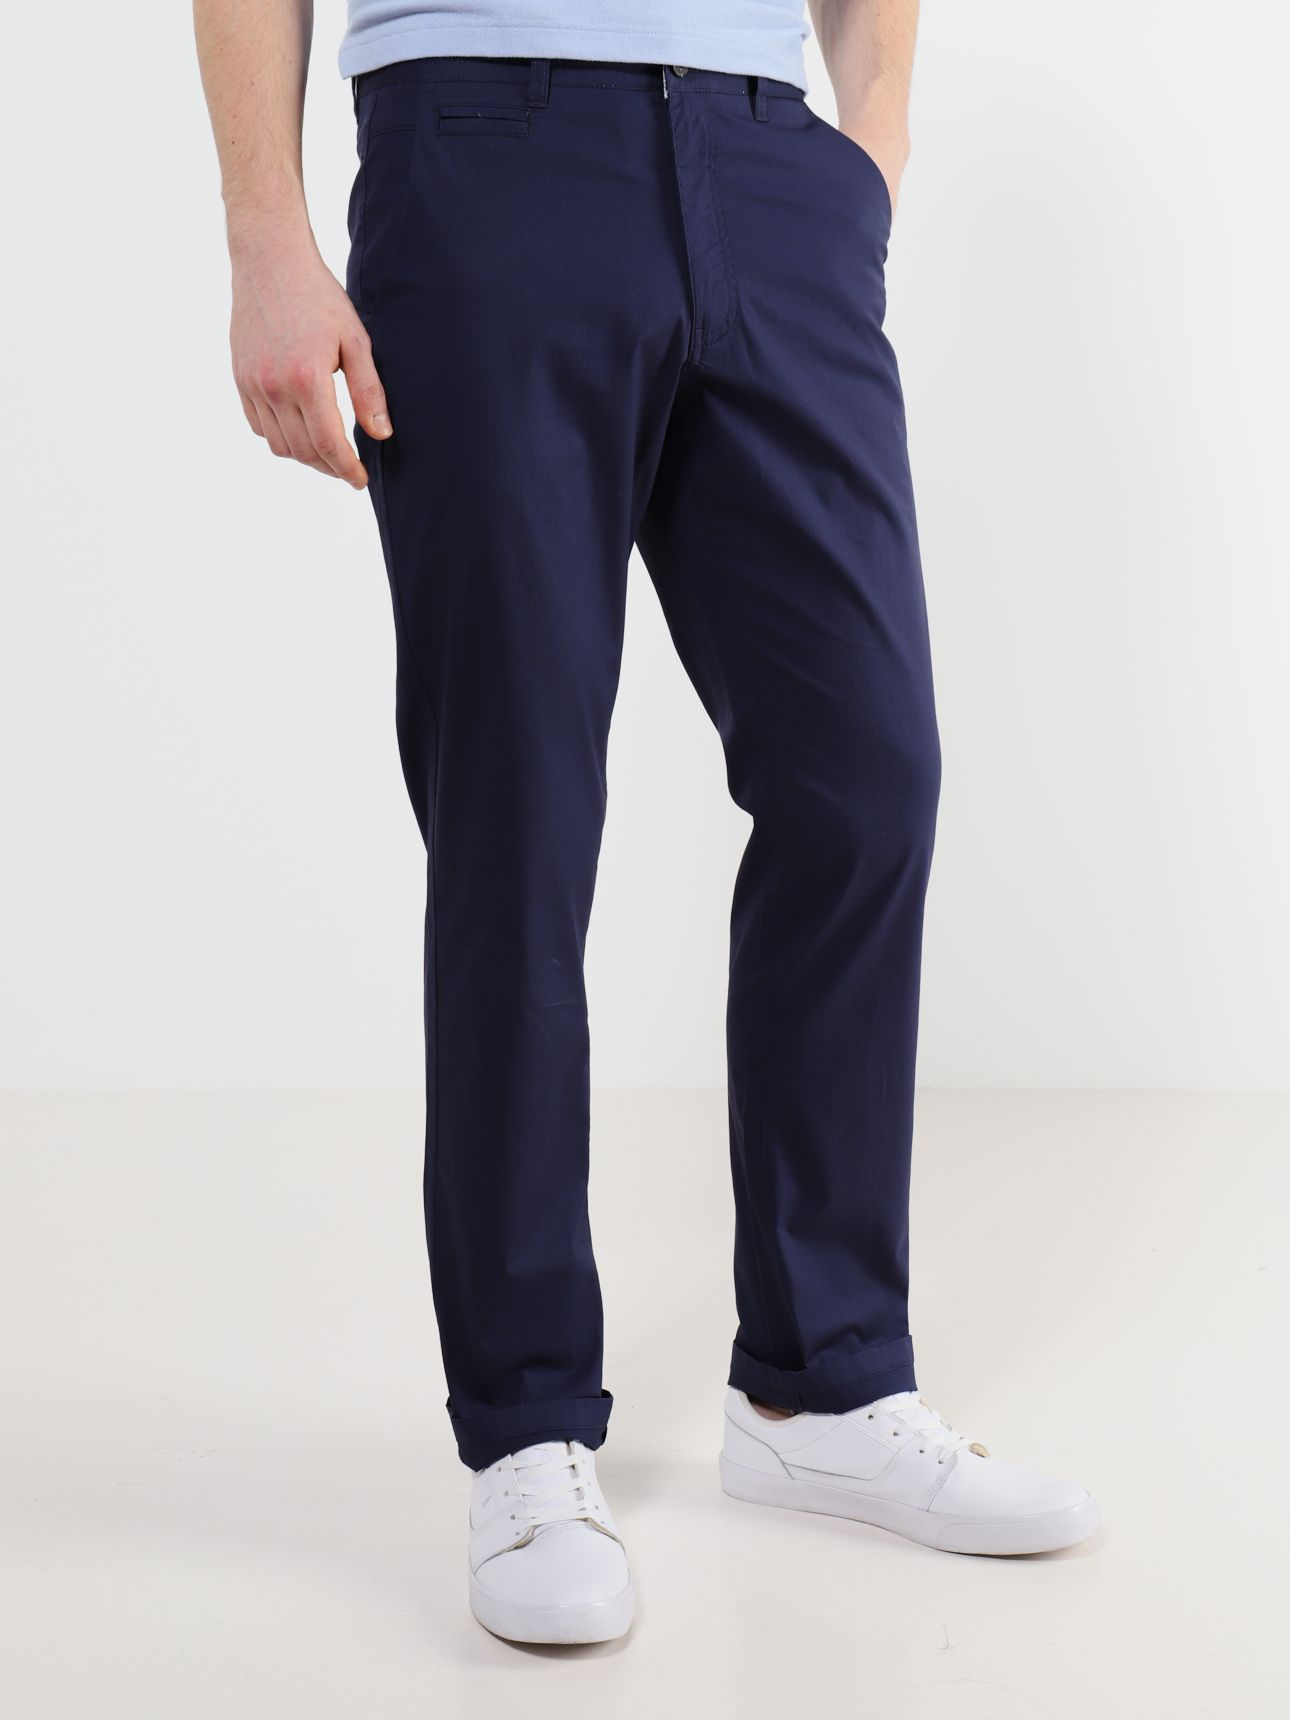 Ritter Jeans Брюки